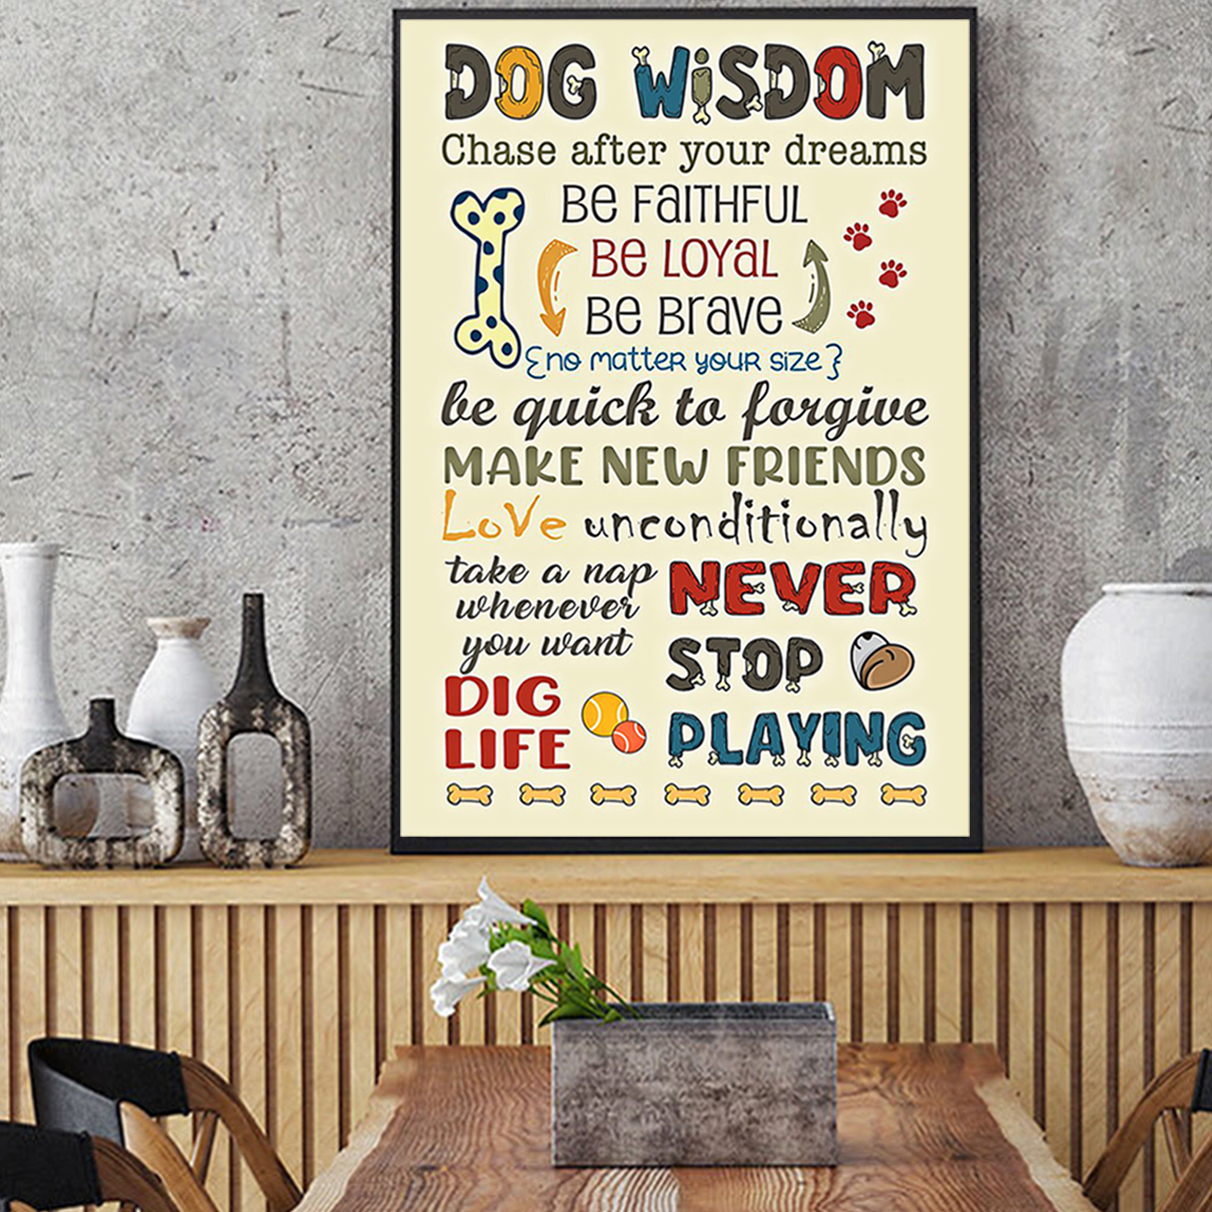 Dog wisdom chase after your dreams poster A3